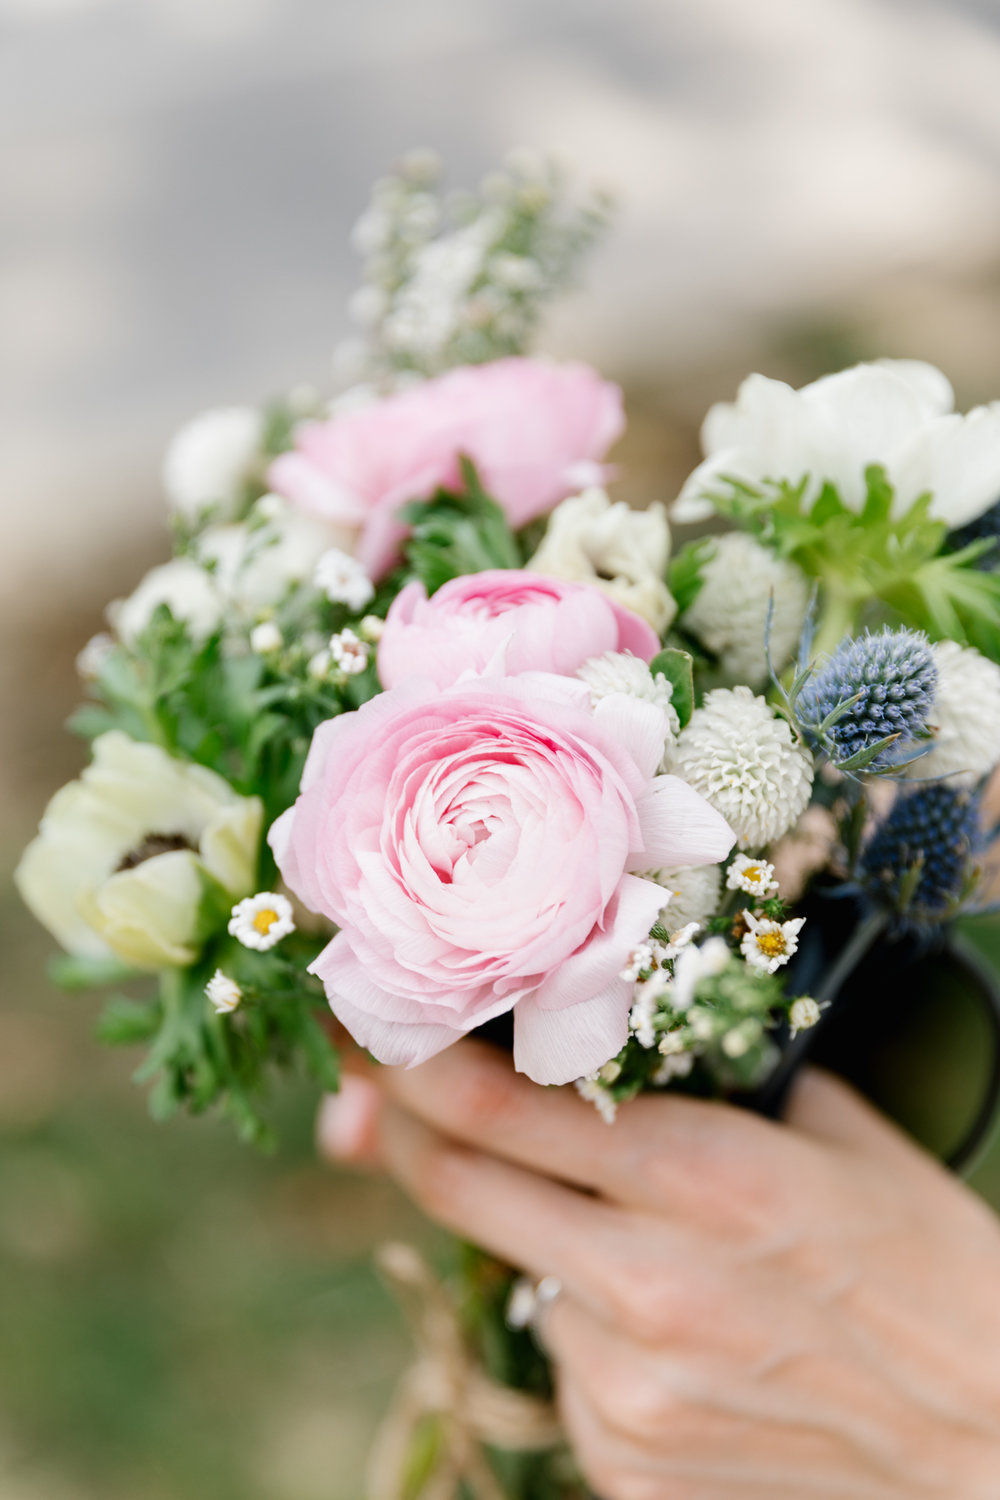 A photo of the bride's bouquet for her wedding at Indiana University in Bloomington, Indiana.